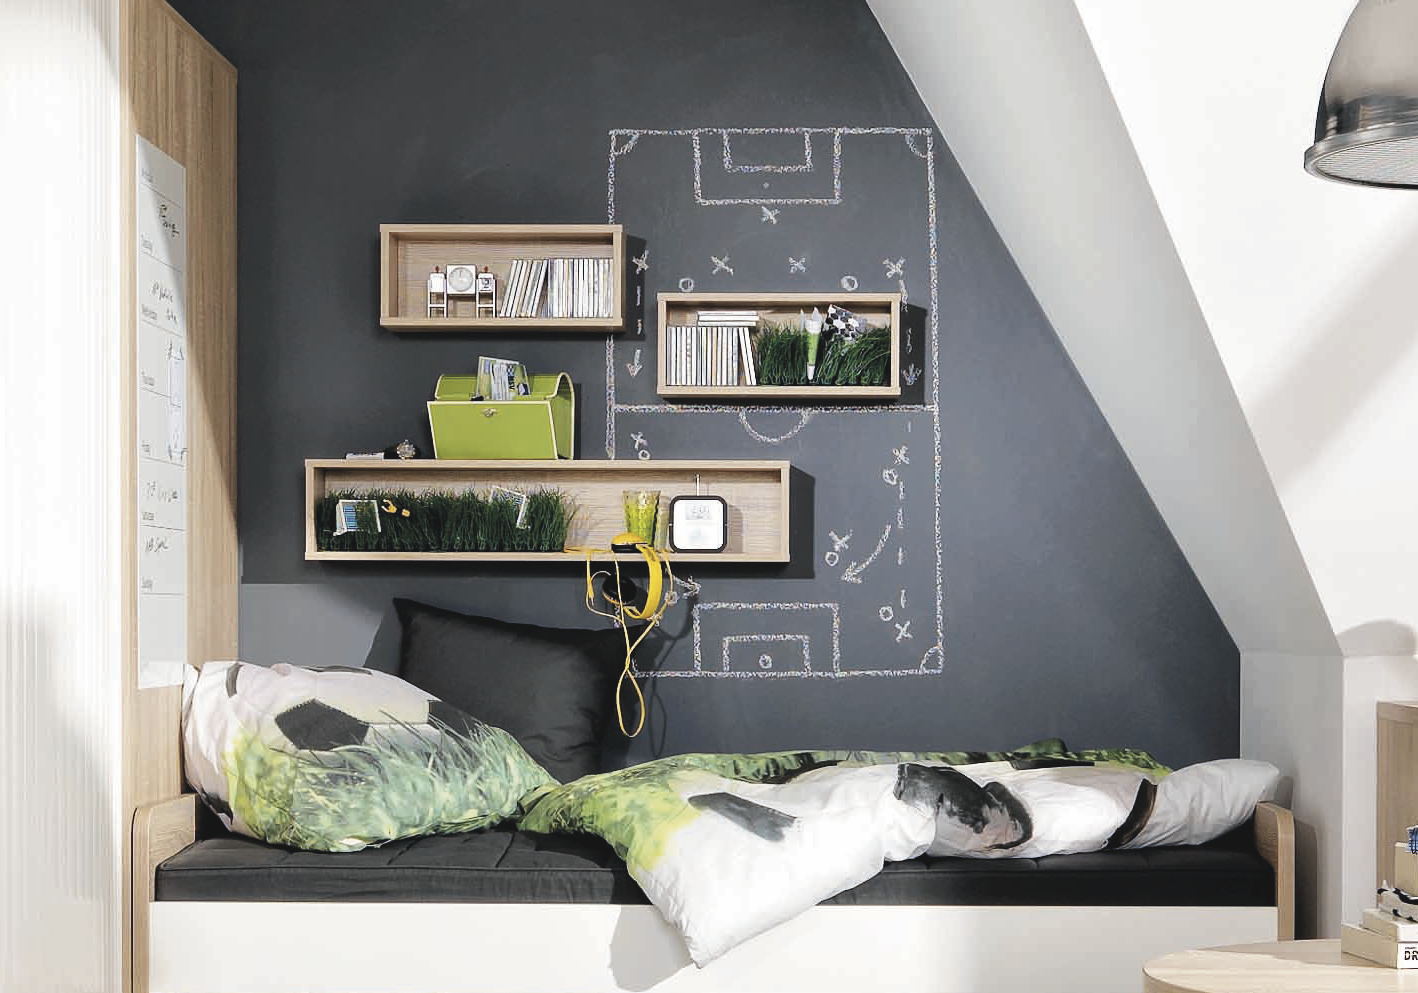 tafelfarbe im jugendzimmer definitiv eine coole idee berlinfreckles reiseblog mamablog. Black Bedroom Furniture Sets. Home Design Ideas